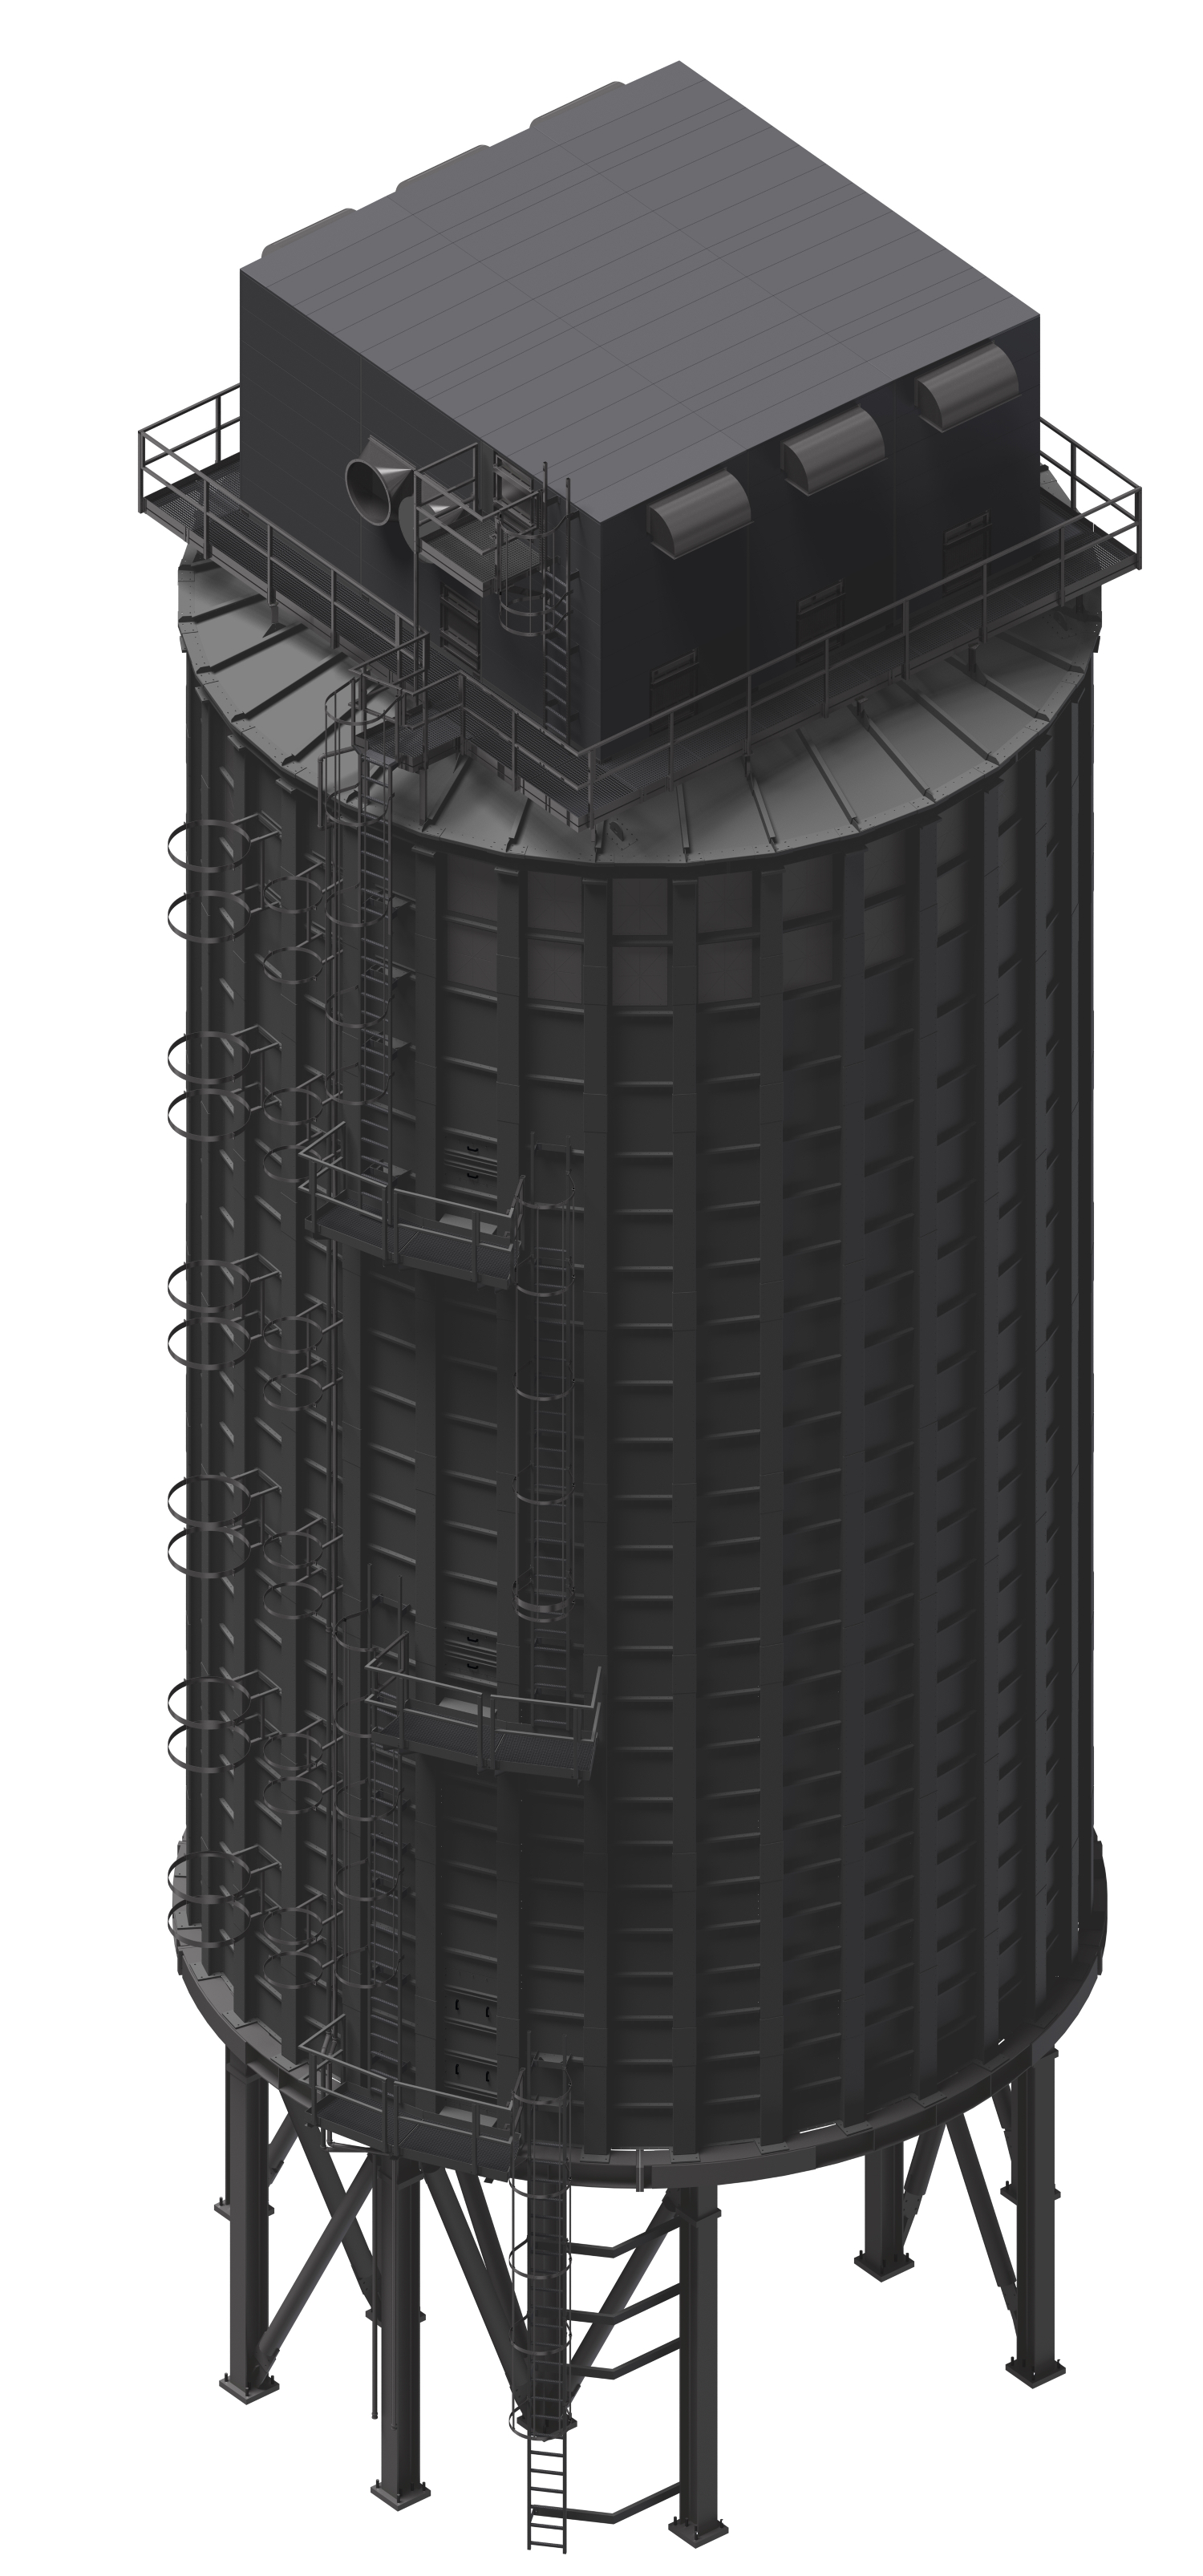 Sheet Metal Silo; R&R BETH FILTRATION project KLAUSNER LUMBER ONE, Florida